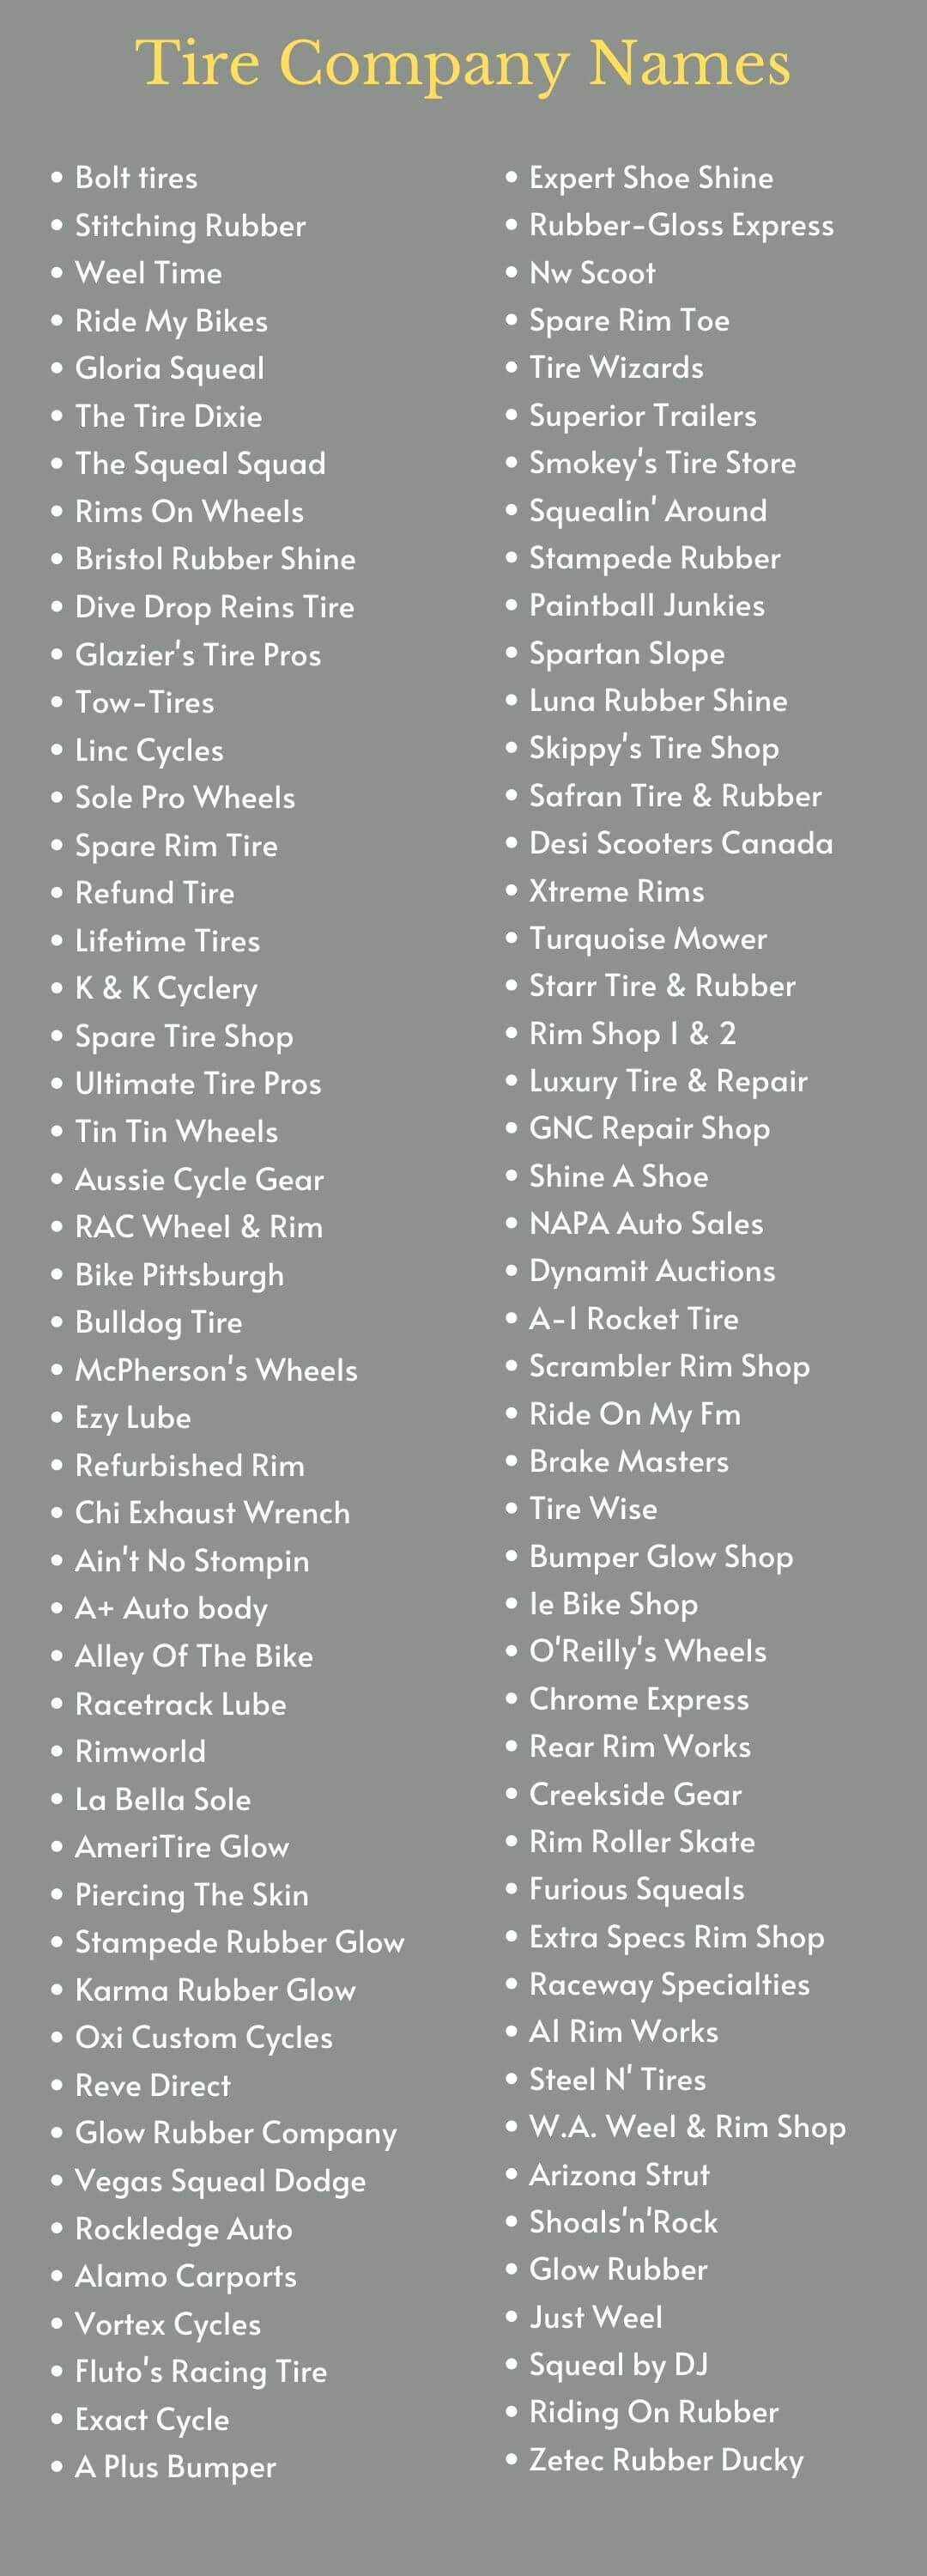 Tire Company Names: Infographic